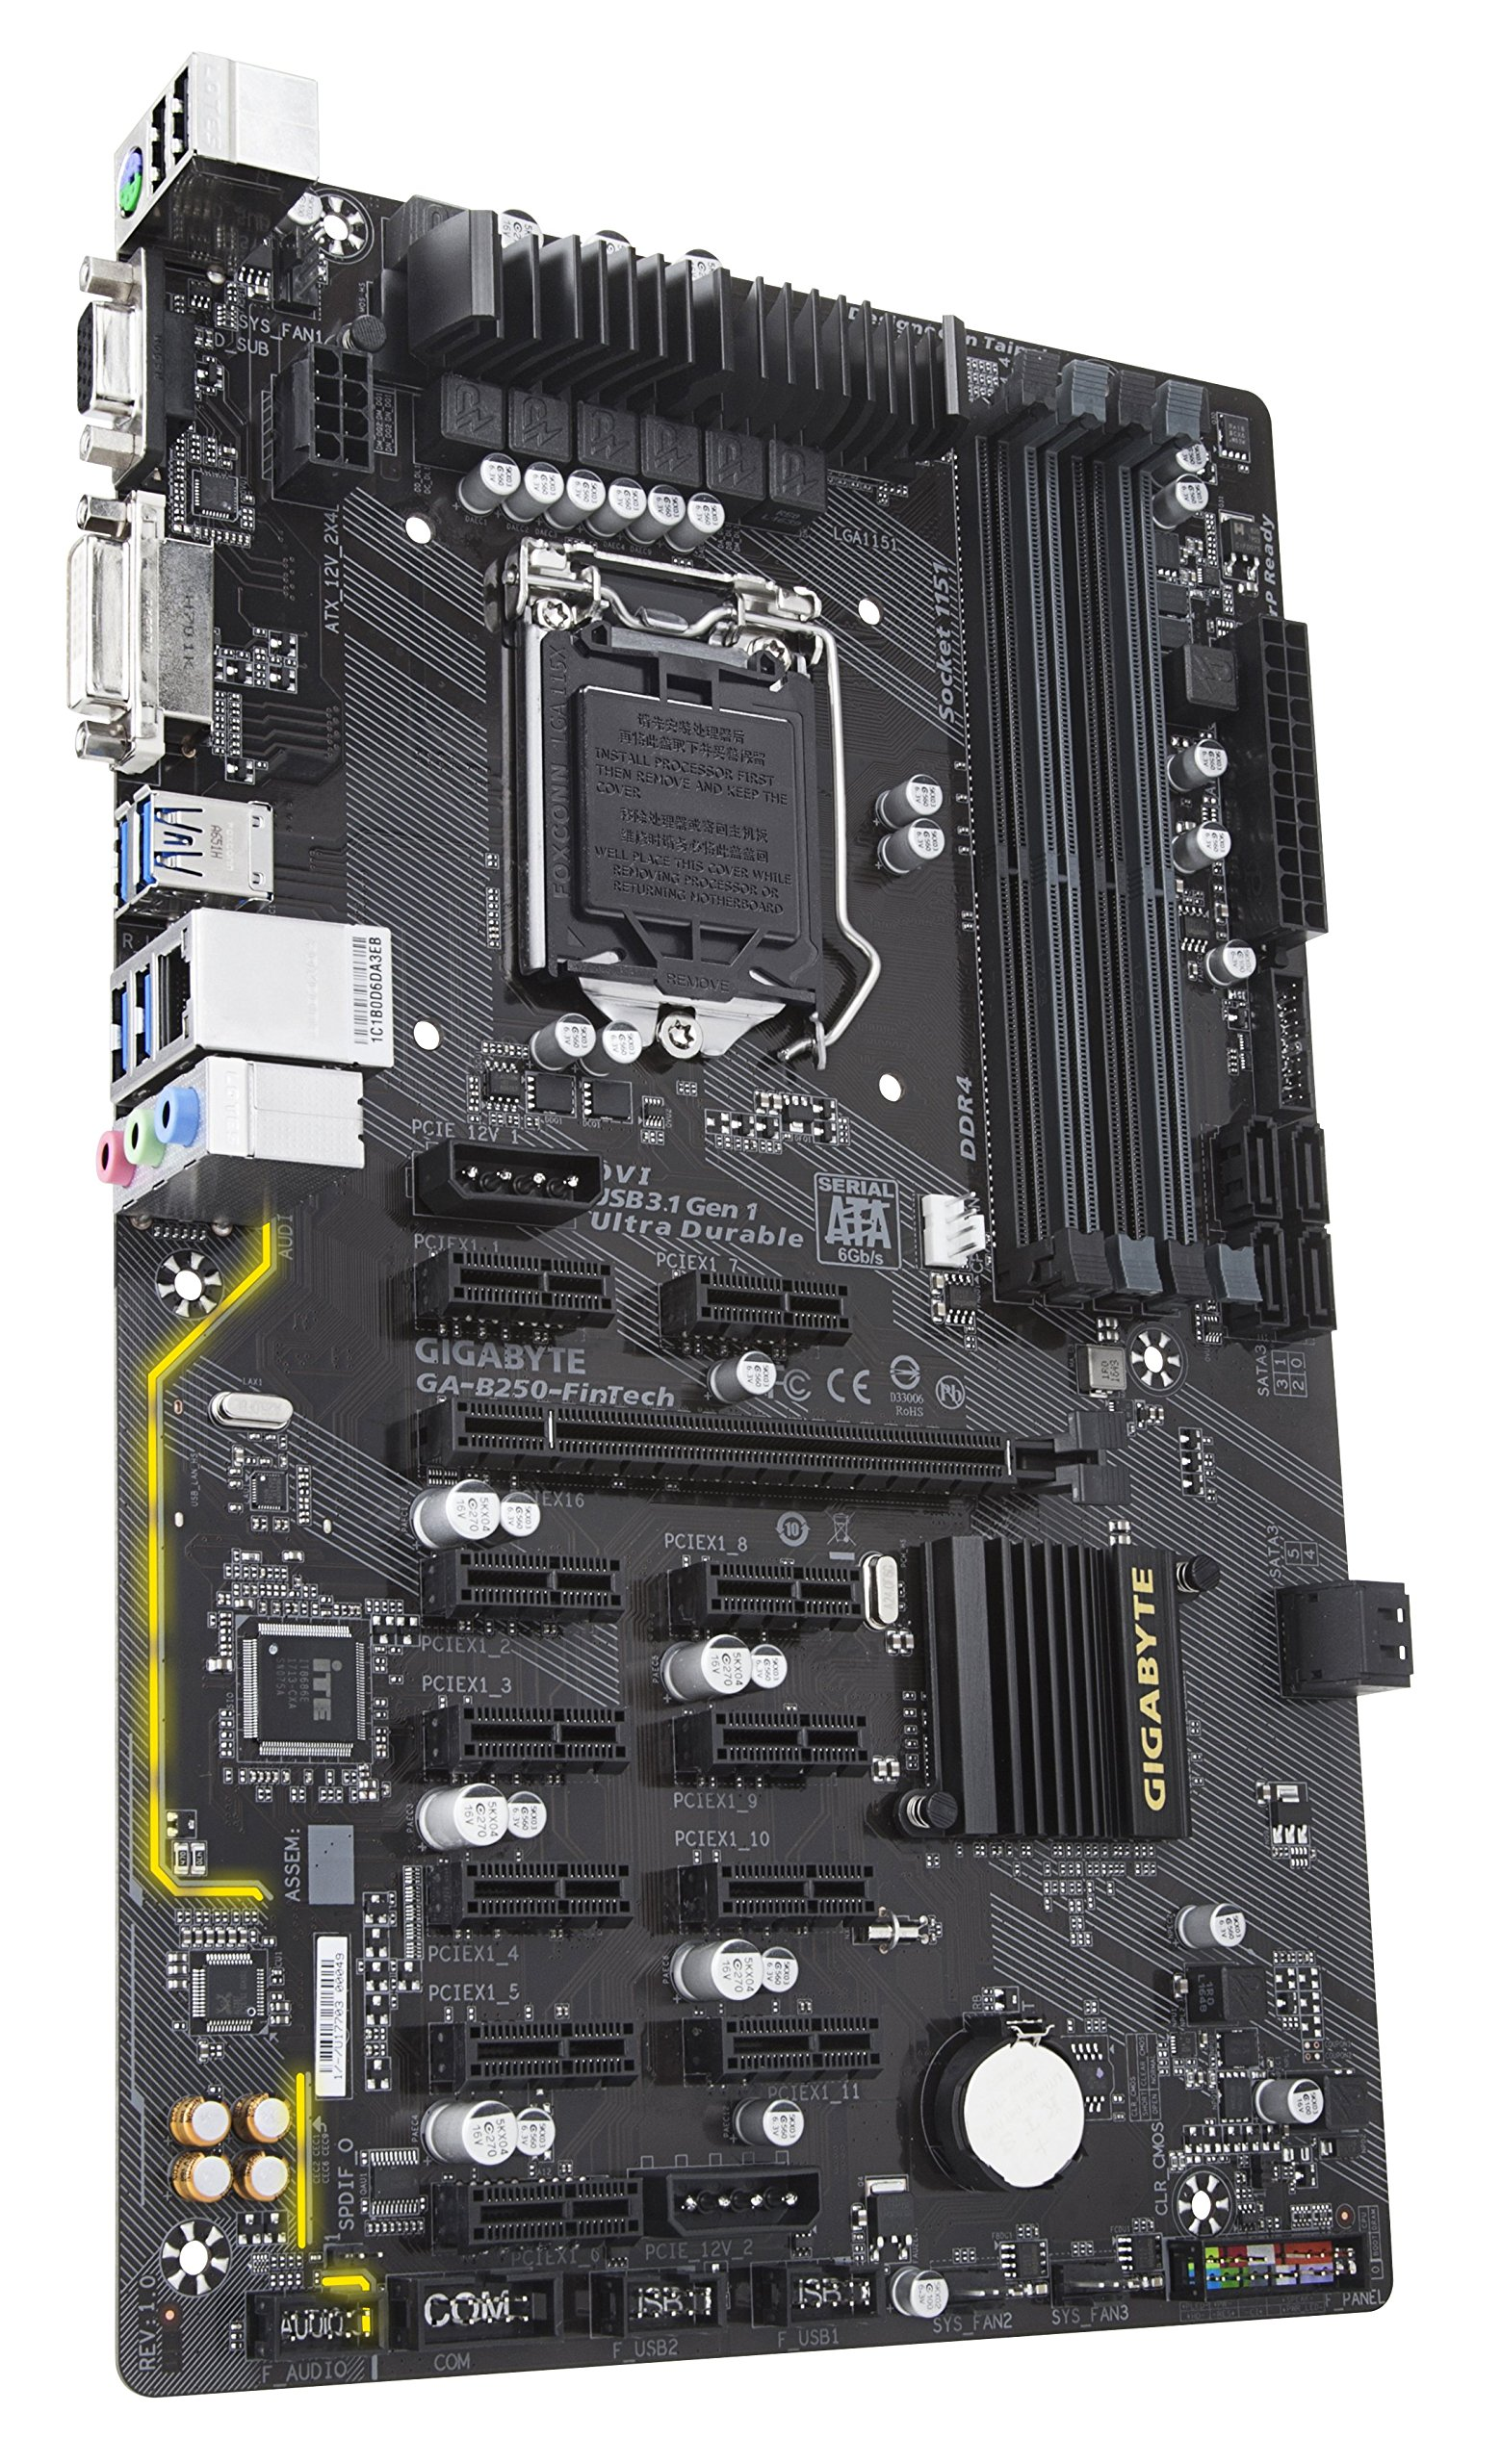 Gigabyte GA-B250-FinTech LGA1151 Intel ATX Cryptocurrency Mining 12PCIe 3.0 DDR4 Motherboard by Gigabyte (Image #3)